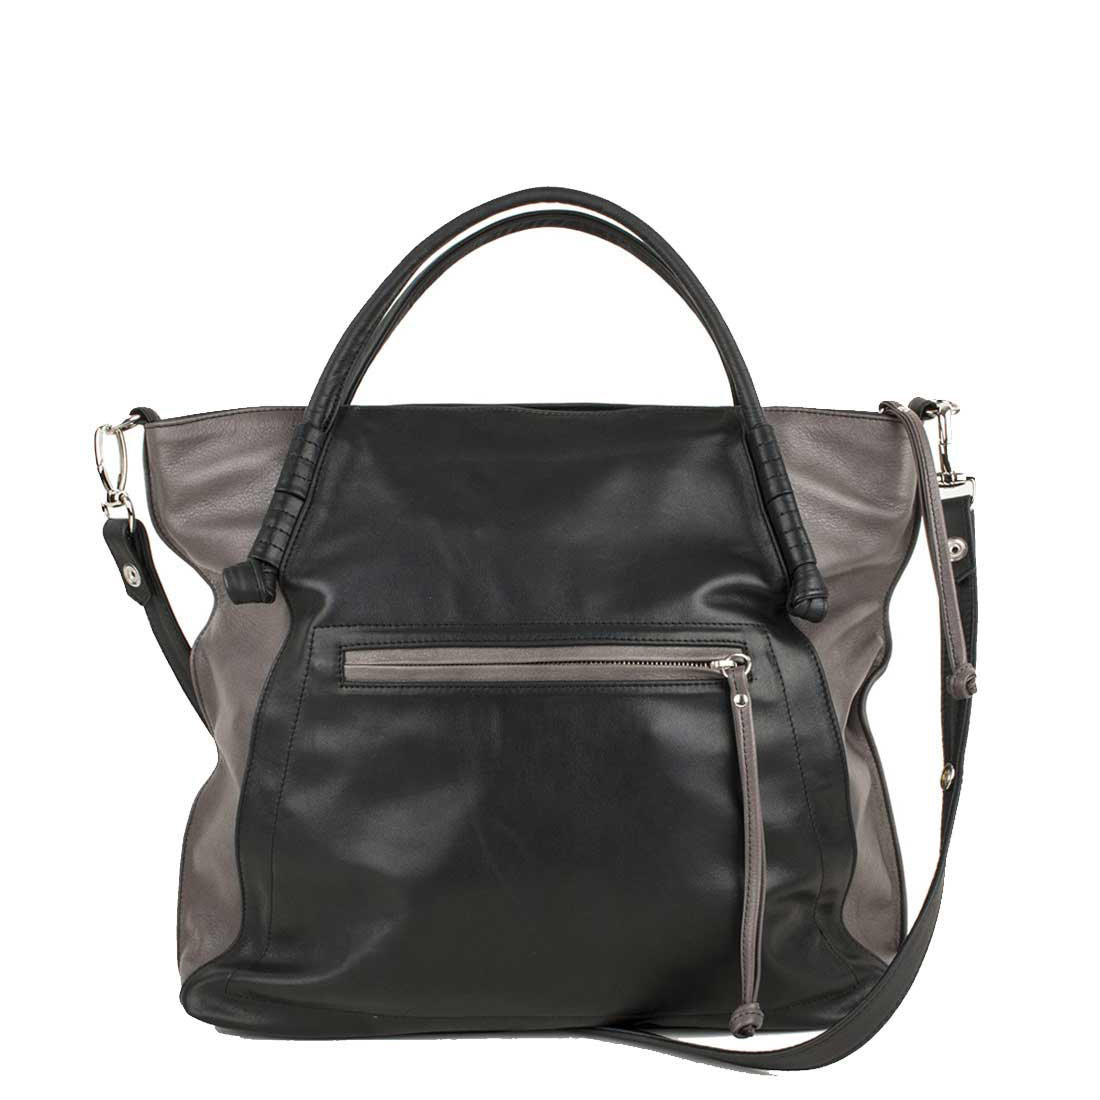 Amber Grigio Black Leather Tote Bag